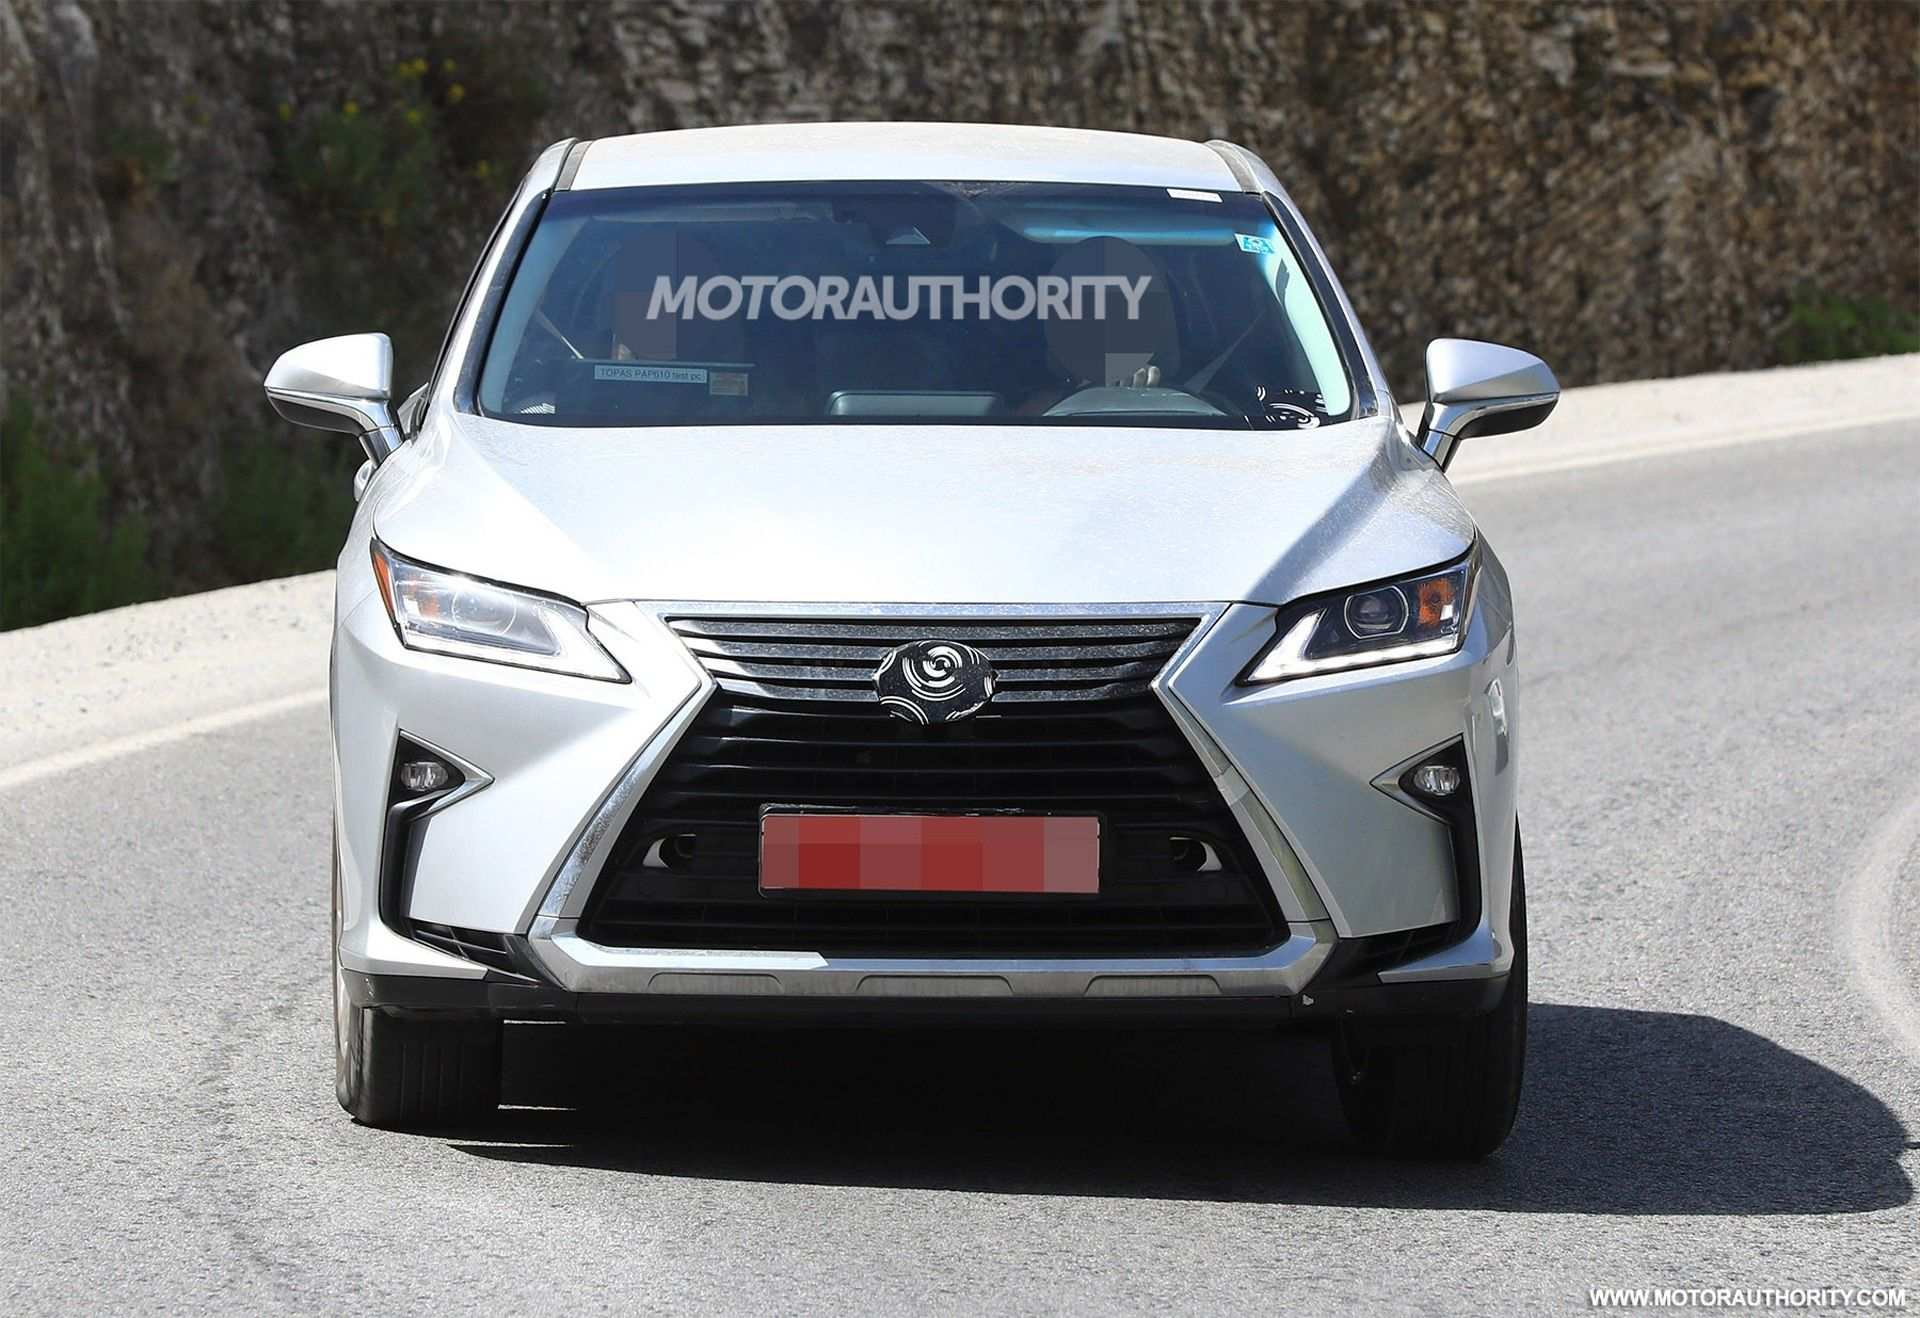 23 All New The 2019 Lexus Rx 350 Release Date Price And Release Date Rumors for The 2019 Lexus Rx 350 Release Date Price And Release Date